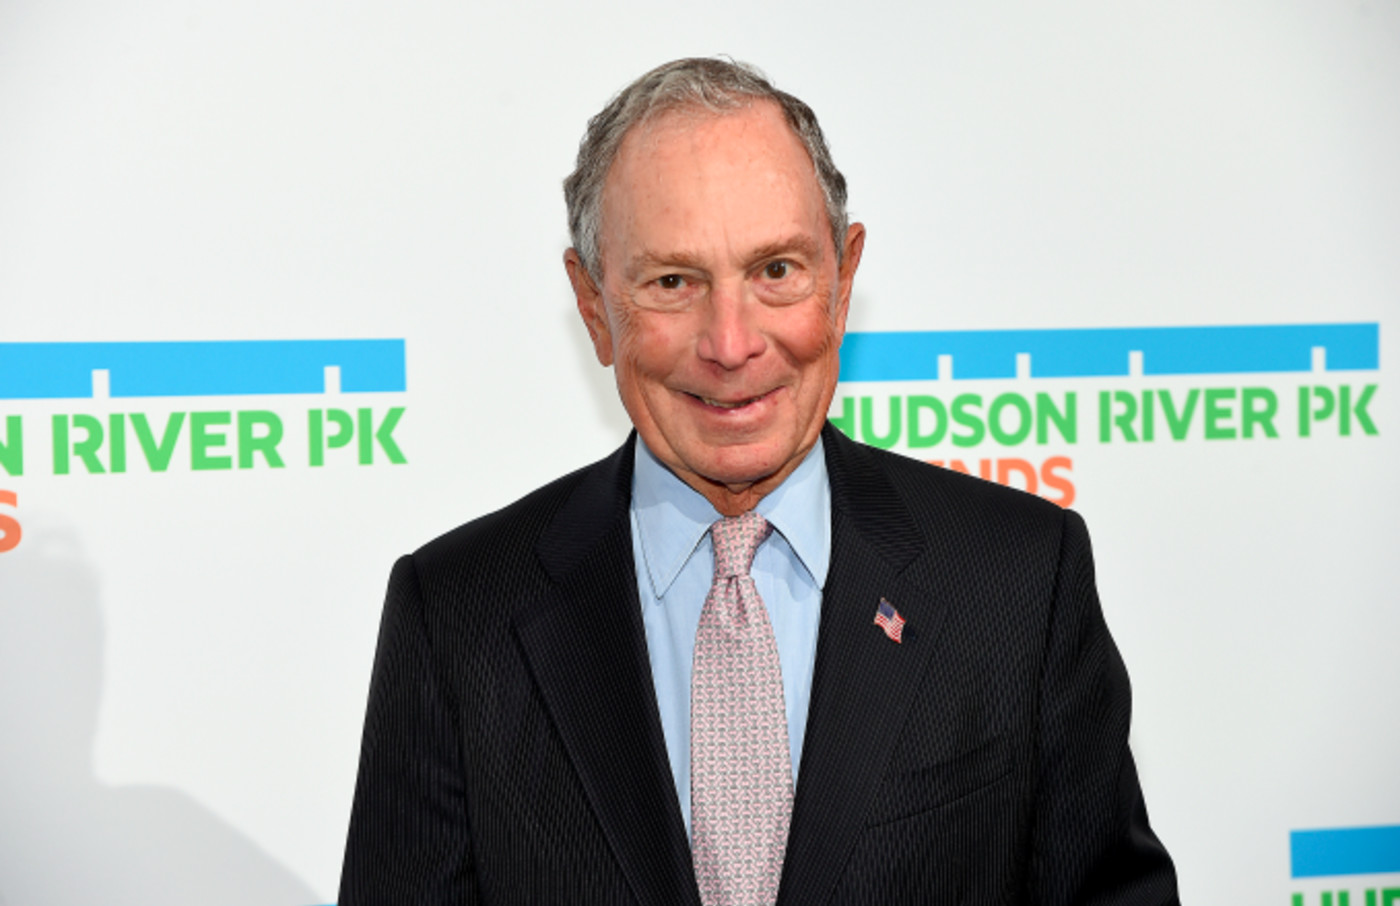 Michael Bloomberg attends the Hudson River Park Annual Gala